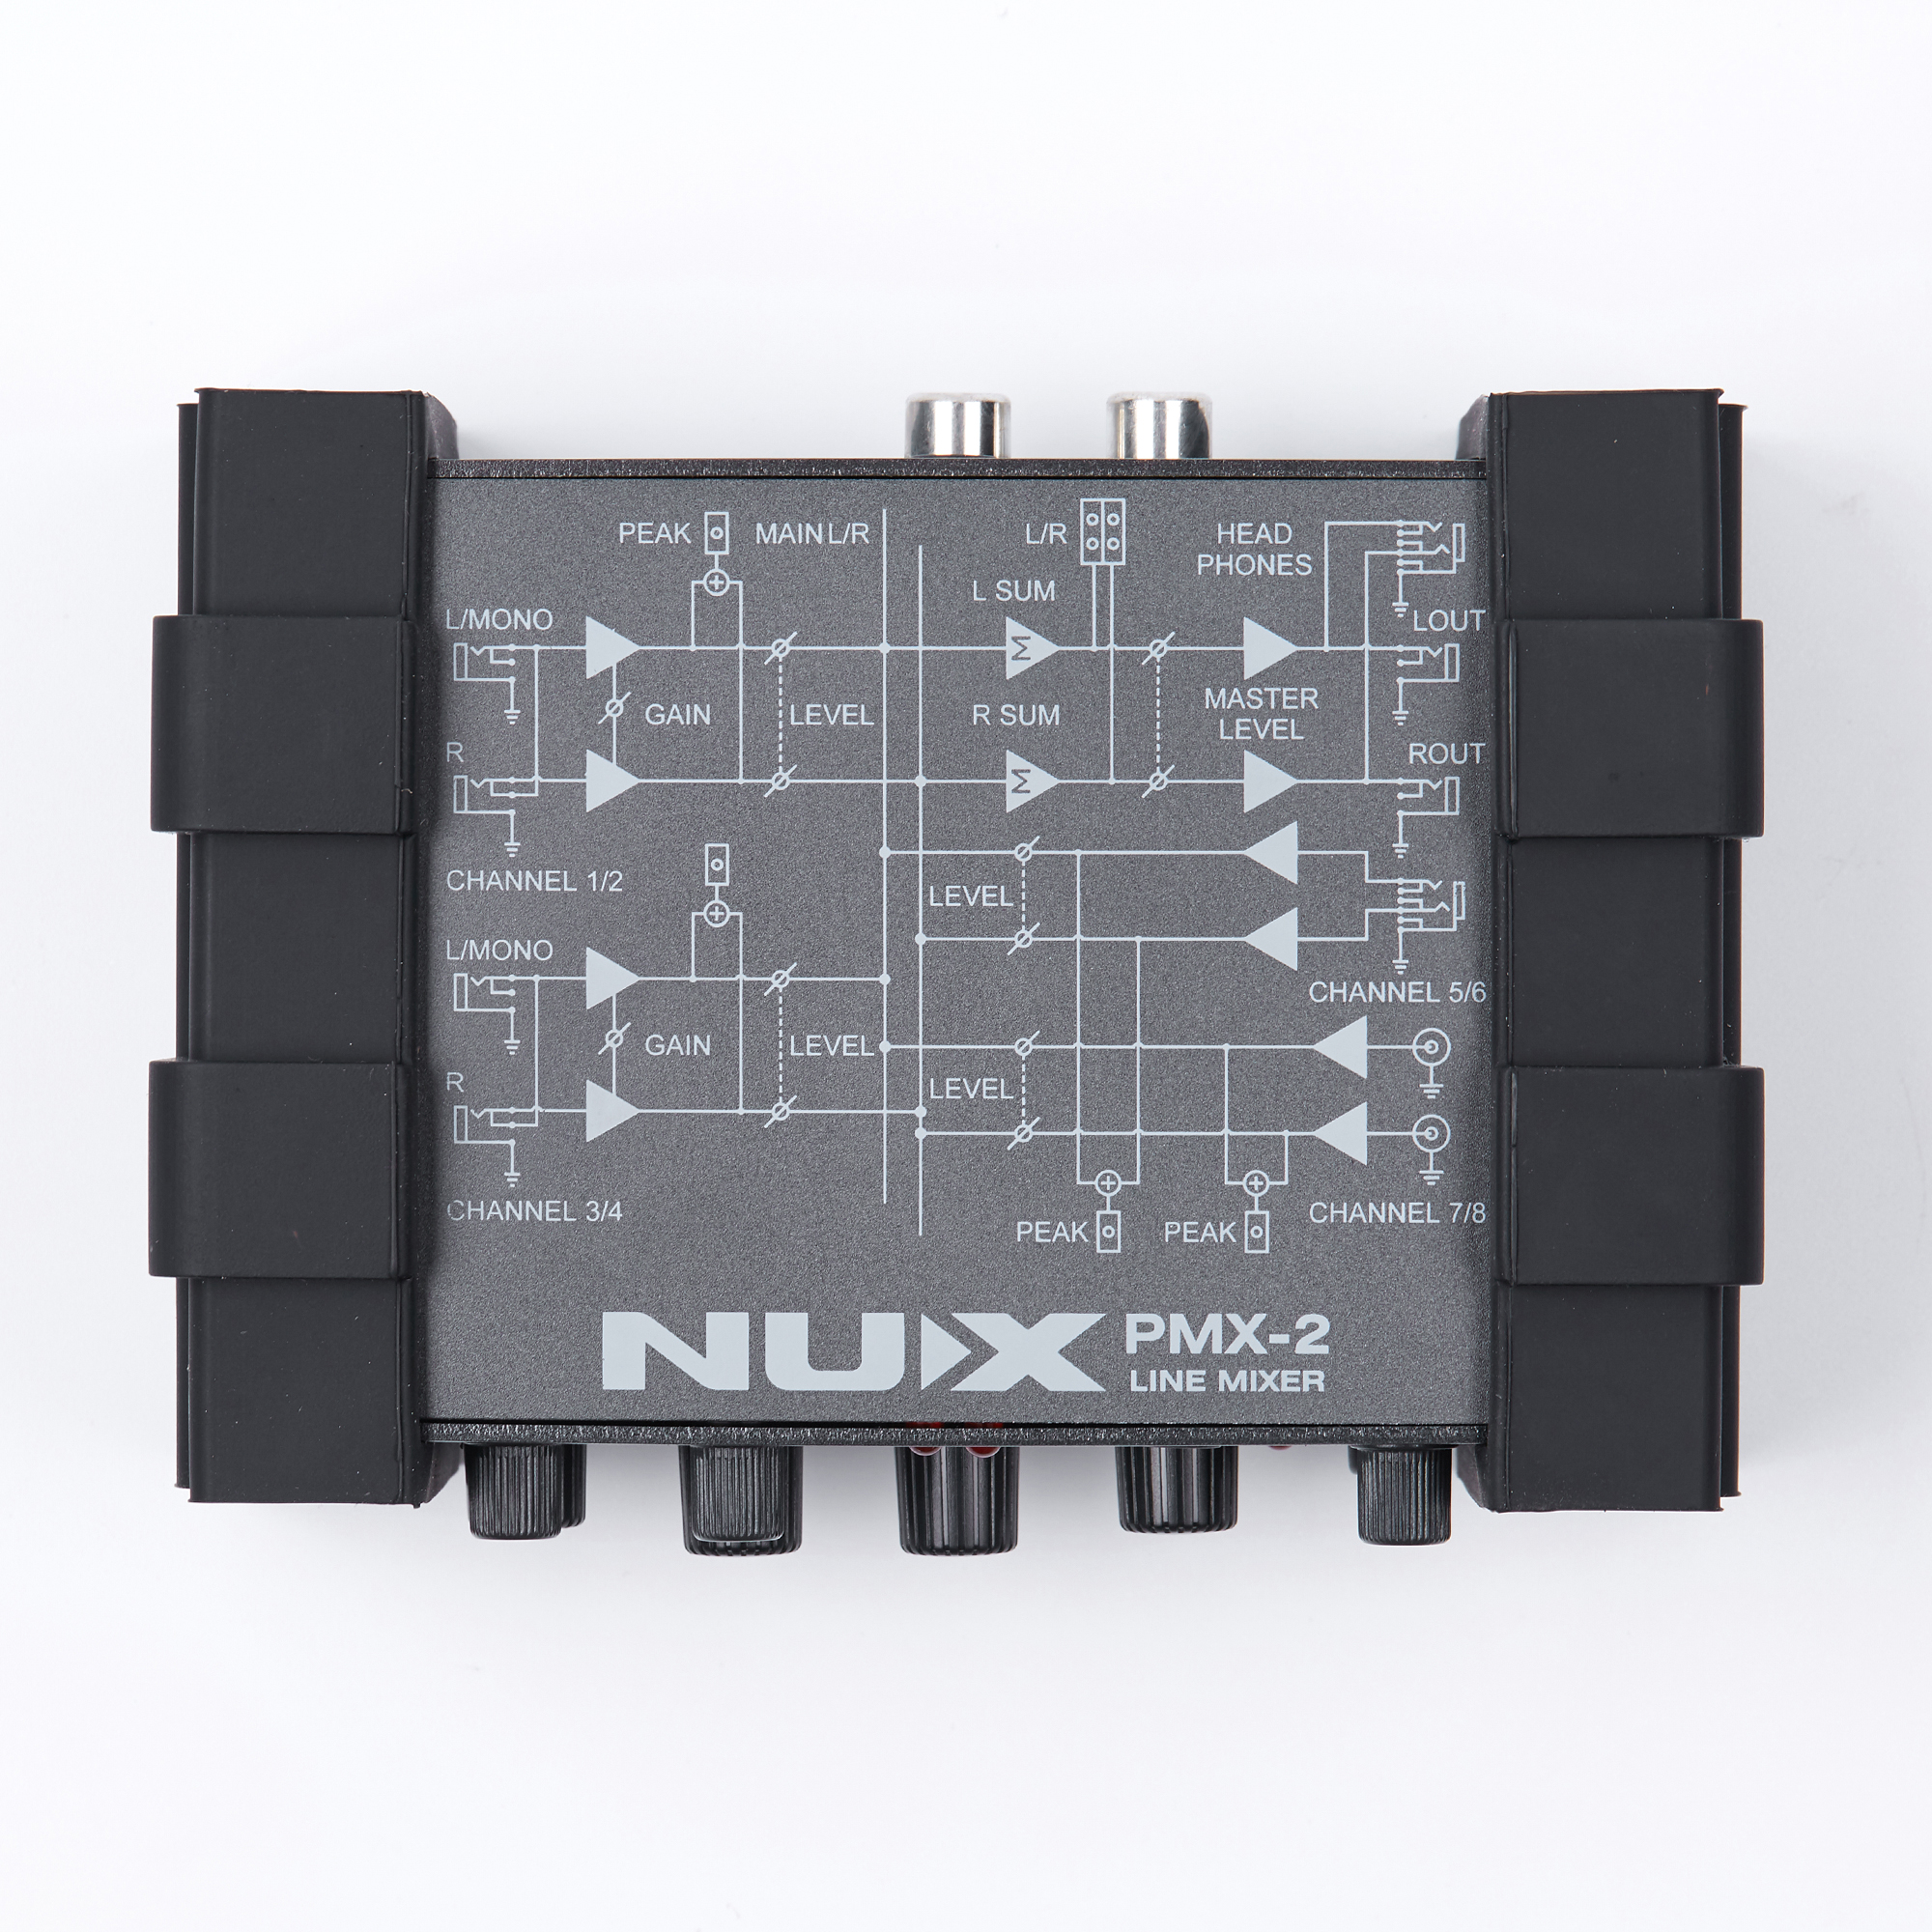 Gain Control 8 Inputs and 2 Outputs NUX PMX-2 Multi-Channel Mini Mixer 30 Musical Instruments Accessories for Guitar Bass Player кардиган gap gap ga020emwxs86